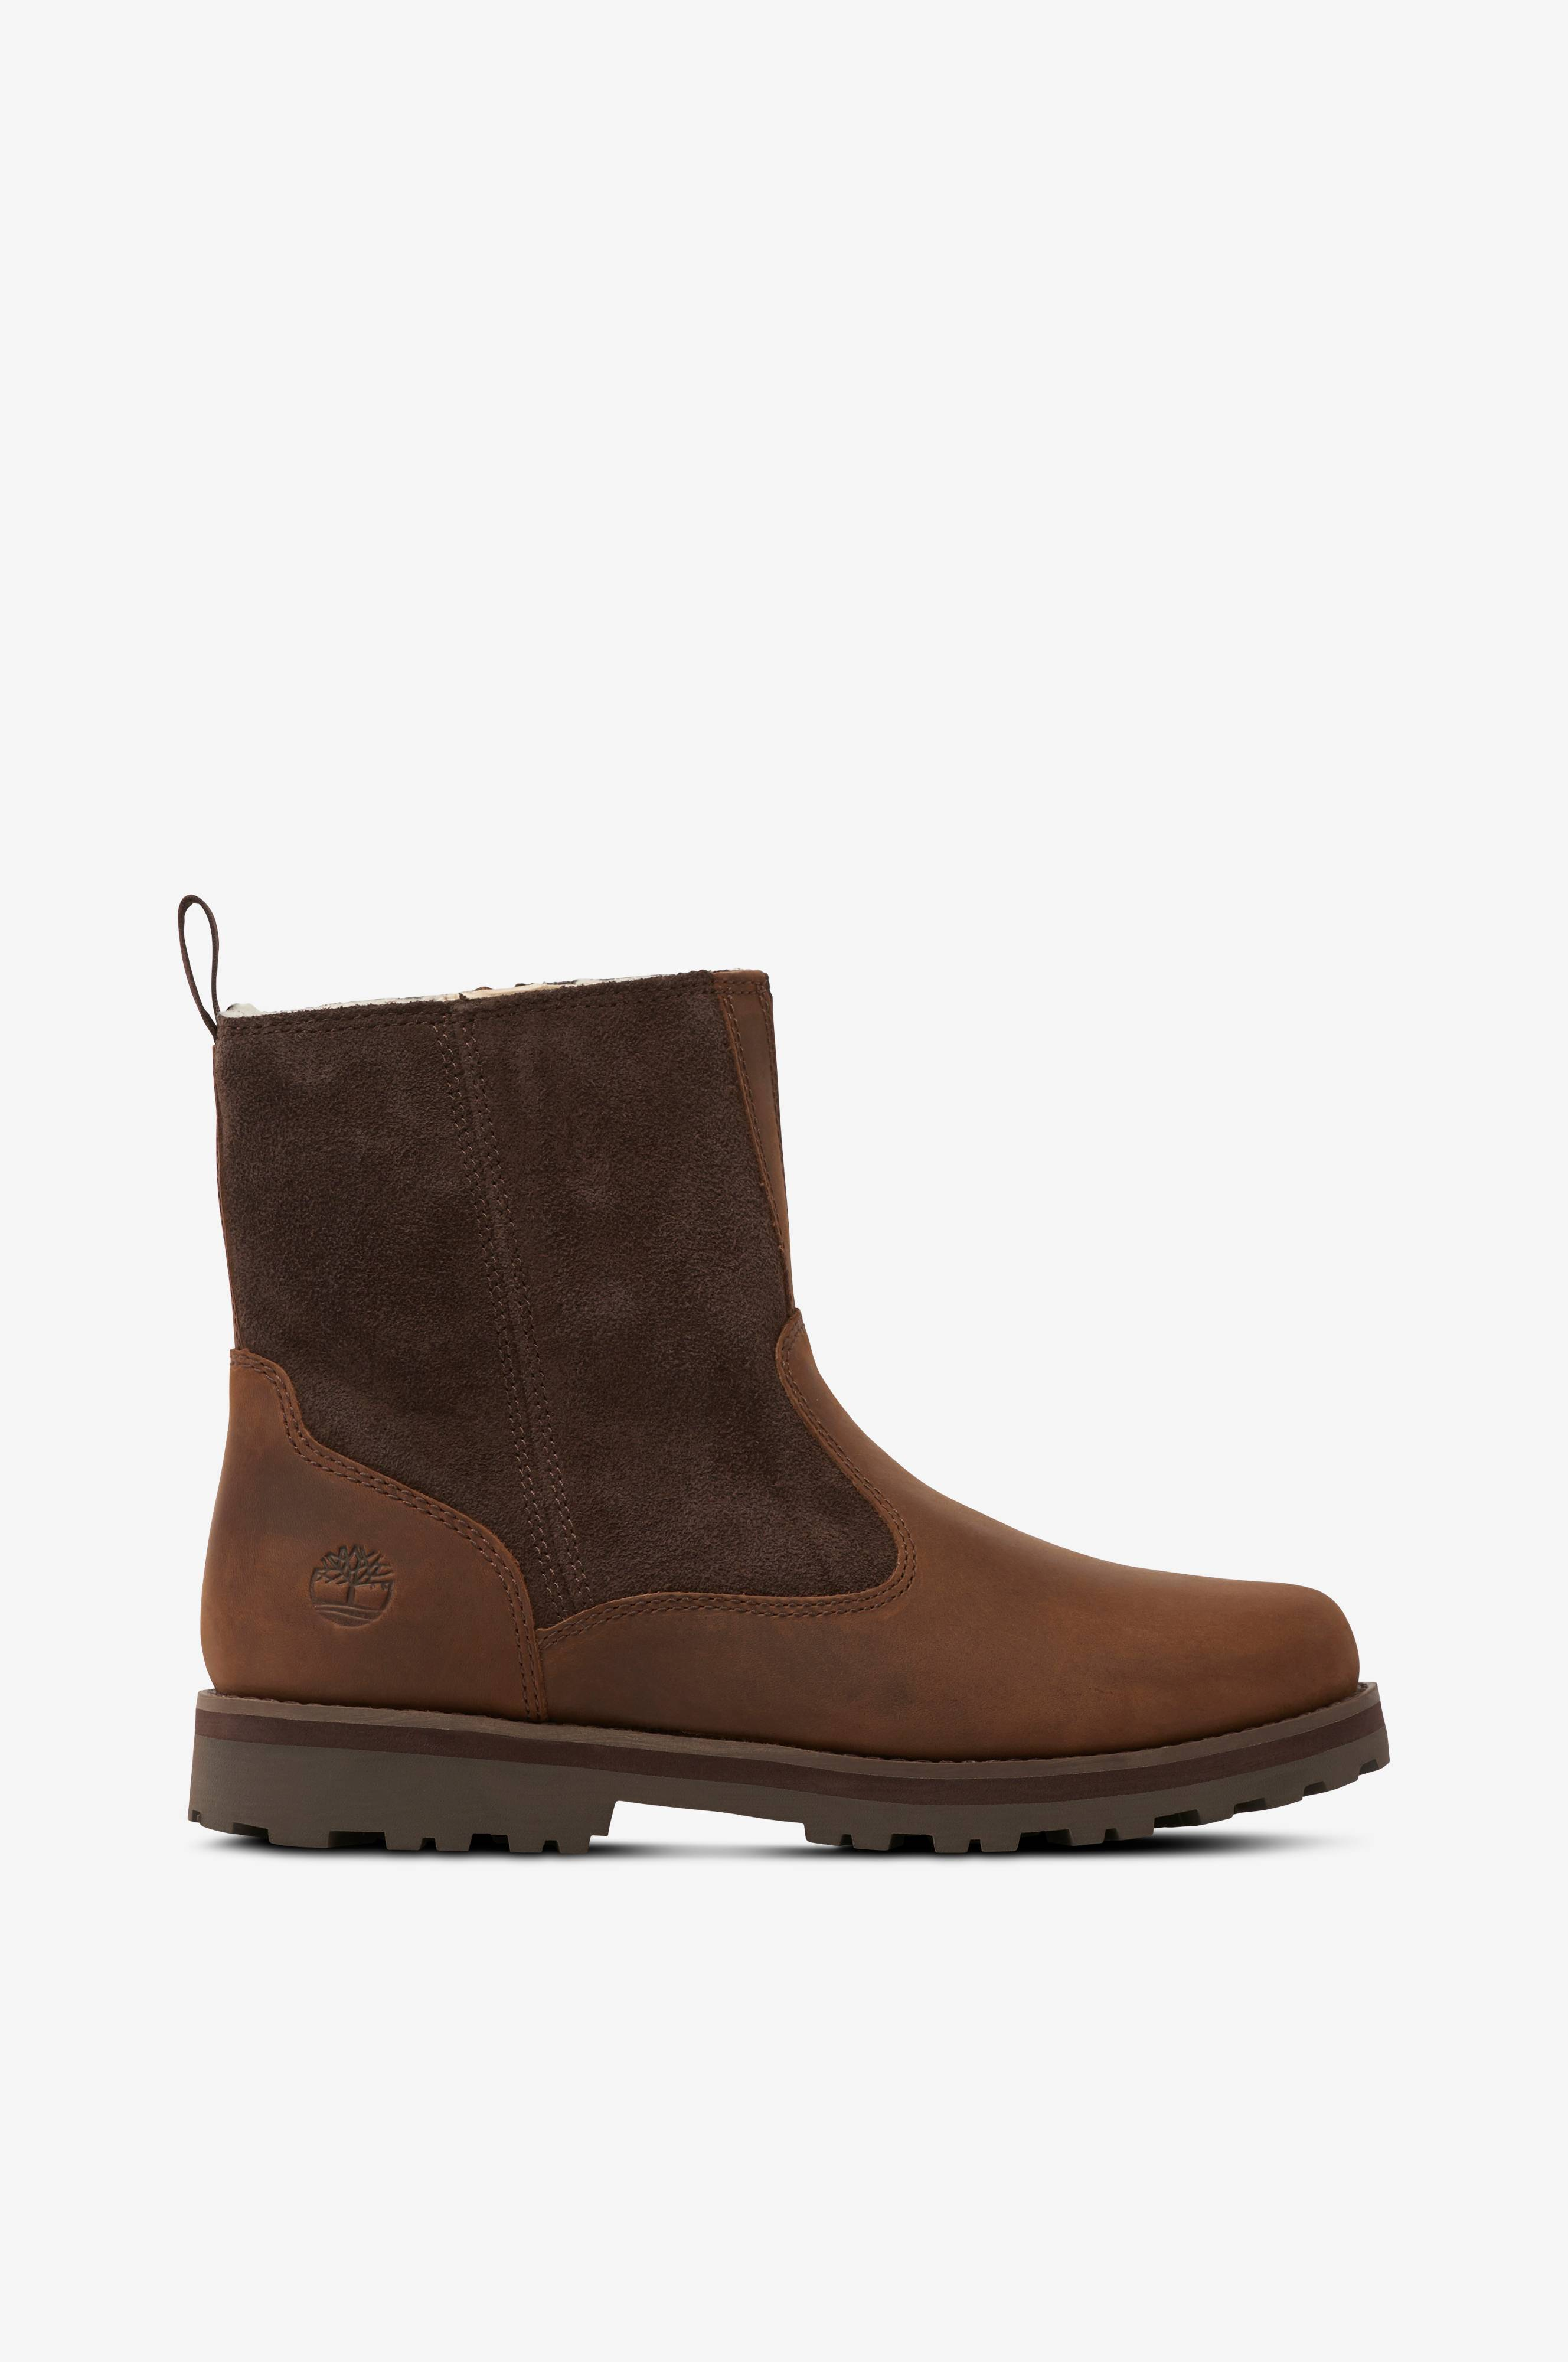 Boots Courma Kid Warm Lined